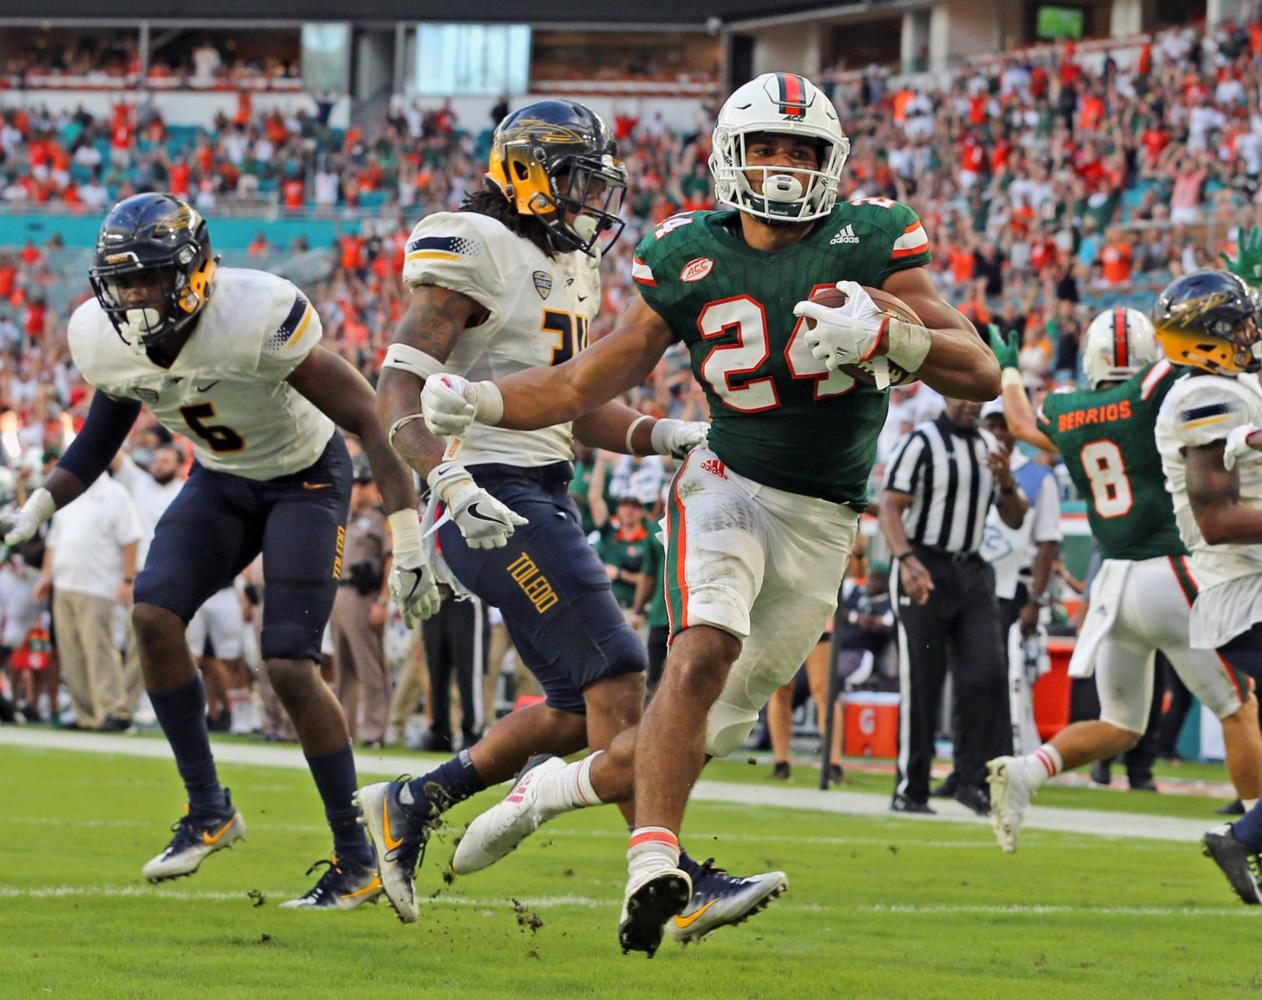 Miami Hurricanes' Travis Homer (24) runs for a third quarter touchdown against the Toledo Rockets on Saturday, Sept. 23, 2017 at Hard Rock Stadium in Miami Gardens, Fla. (Charles Trainor Jr./Miami Herald/TNS)